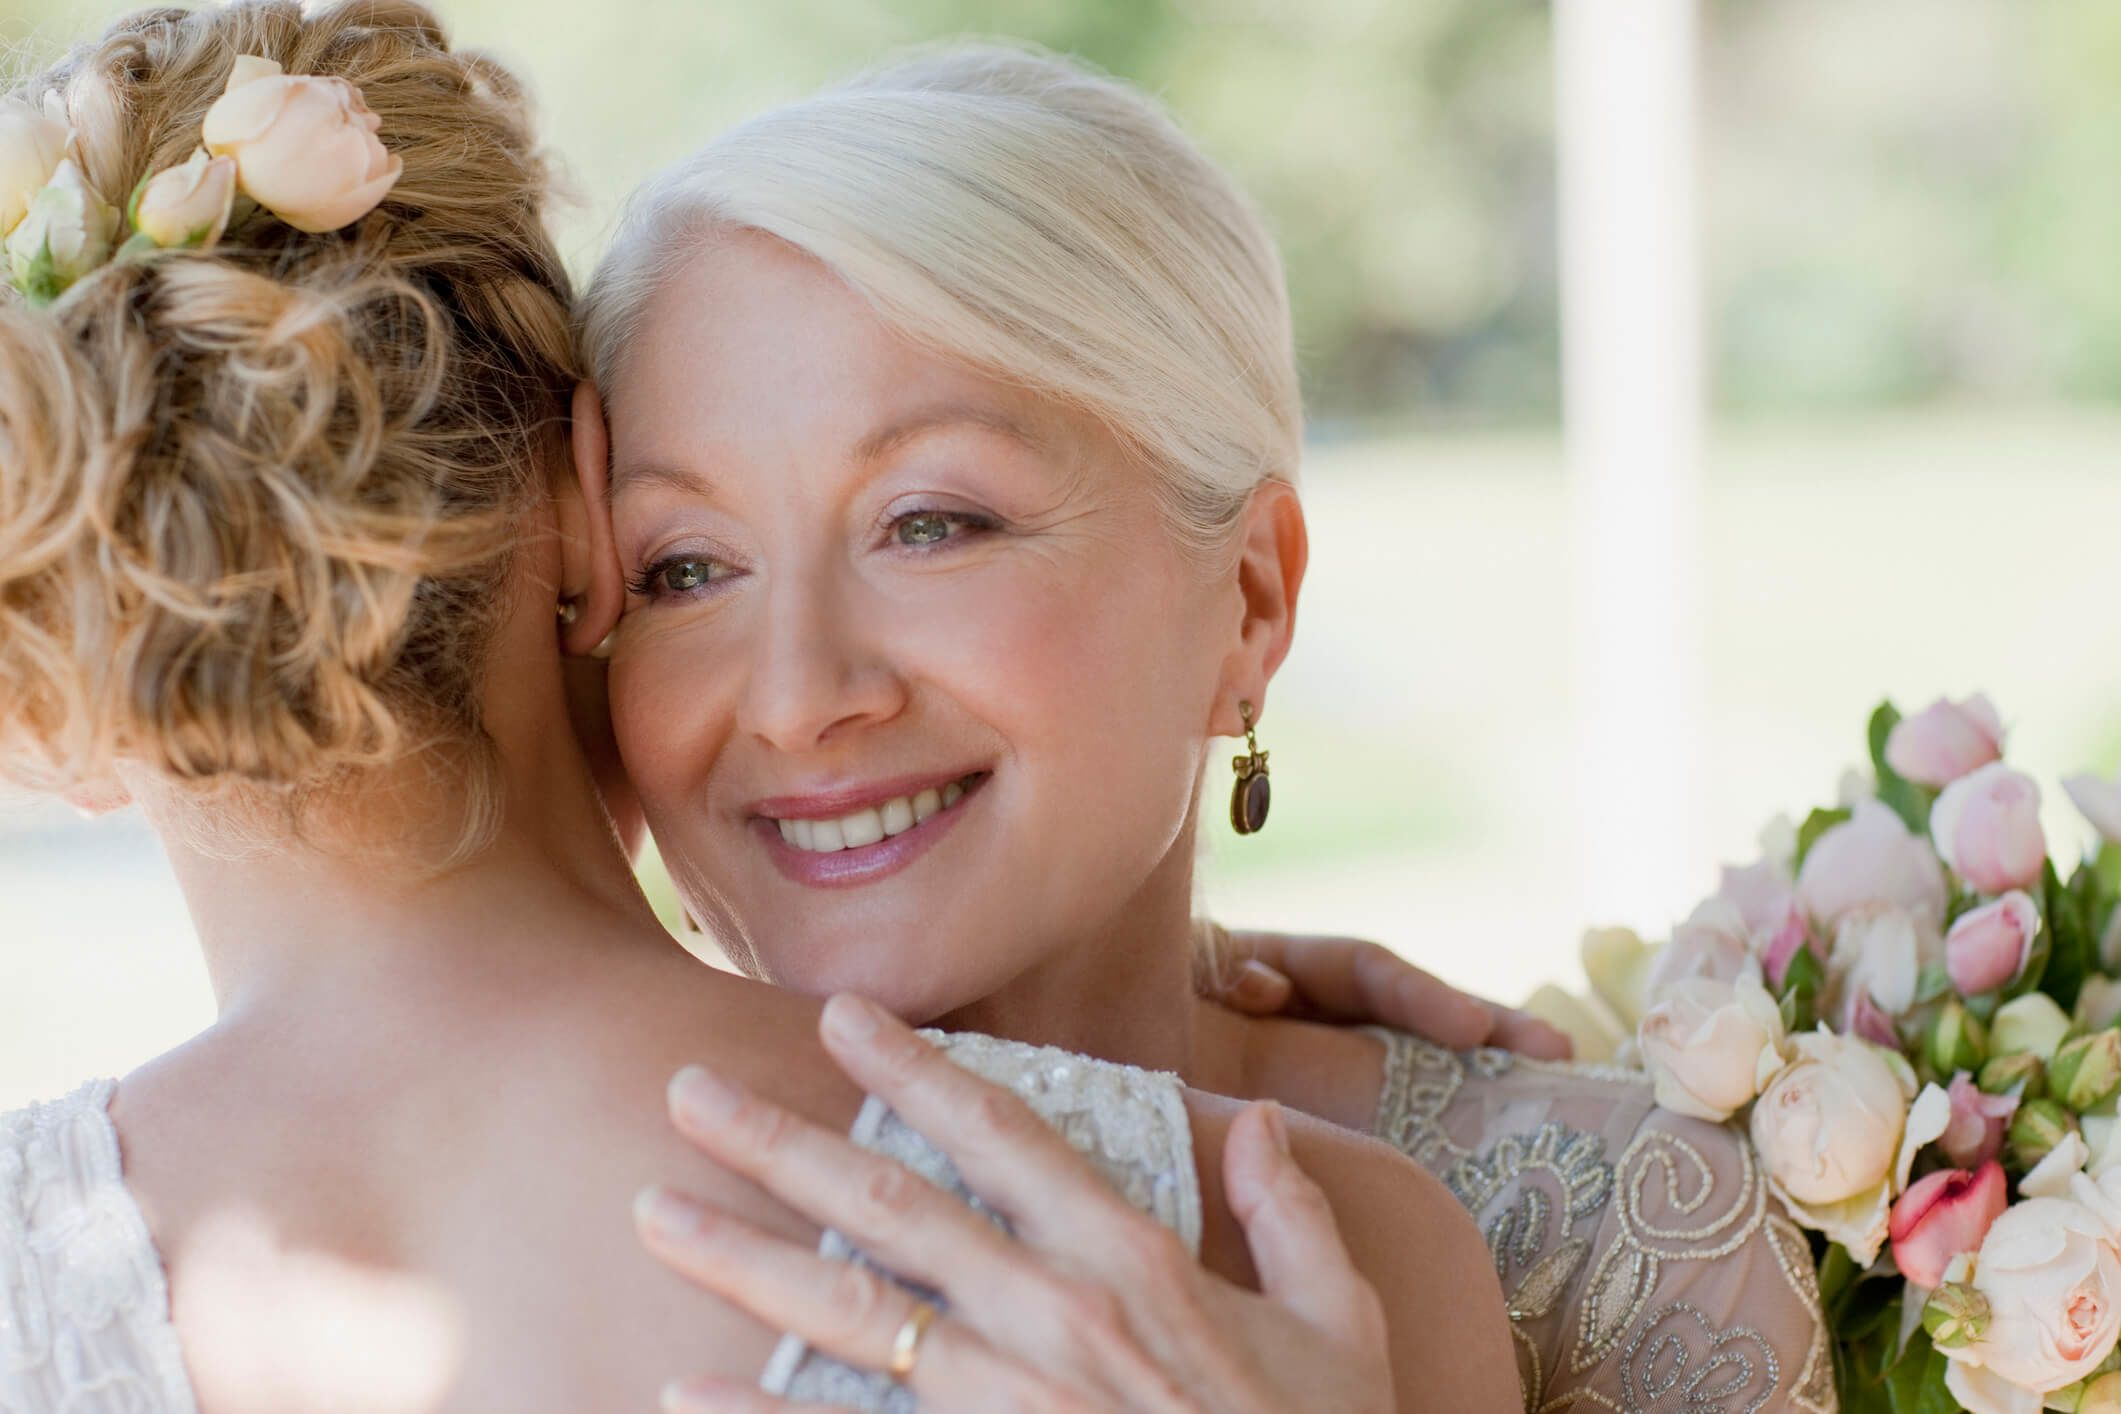 Bridal Express are experts in making mothers of the bride especially beautiful on their daughter's wedding day! Call us now at (866) 216-4534